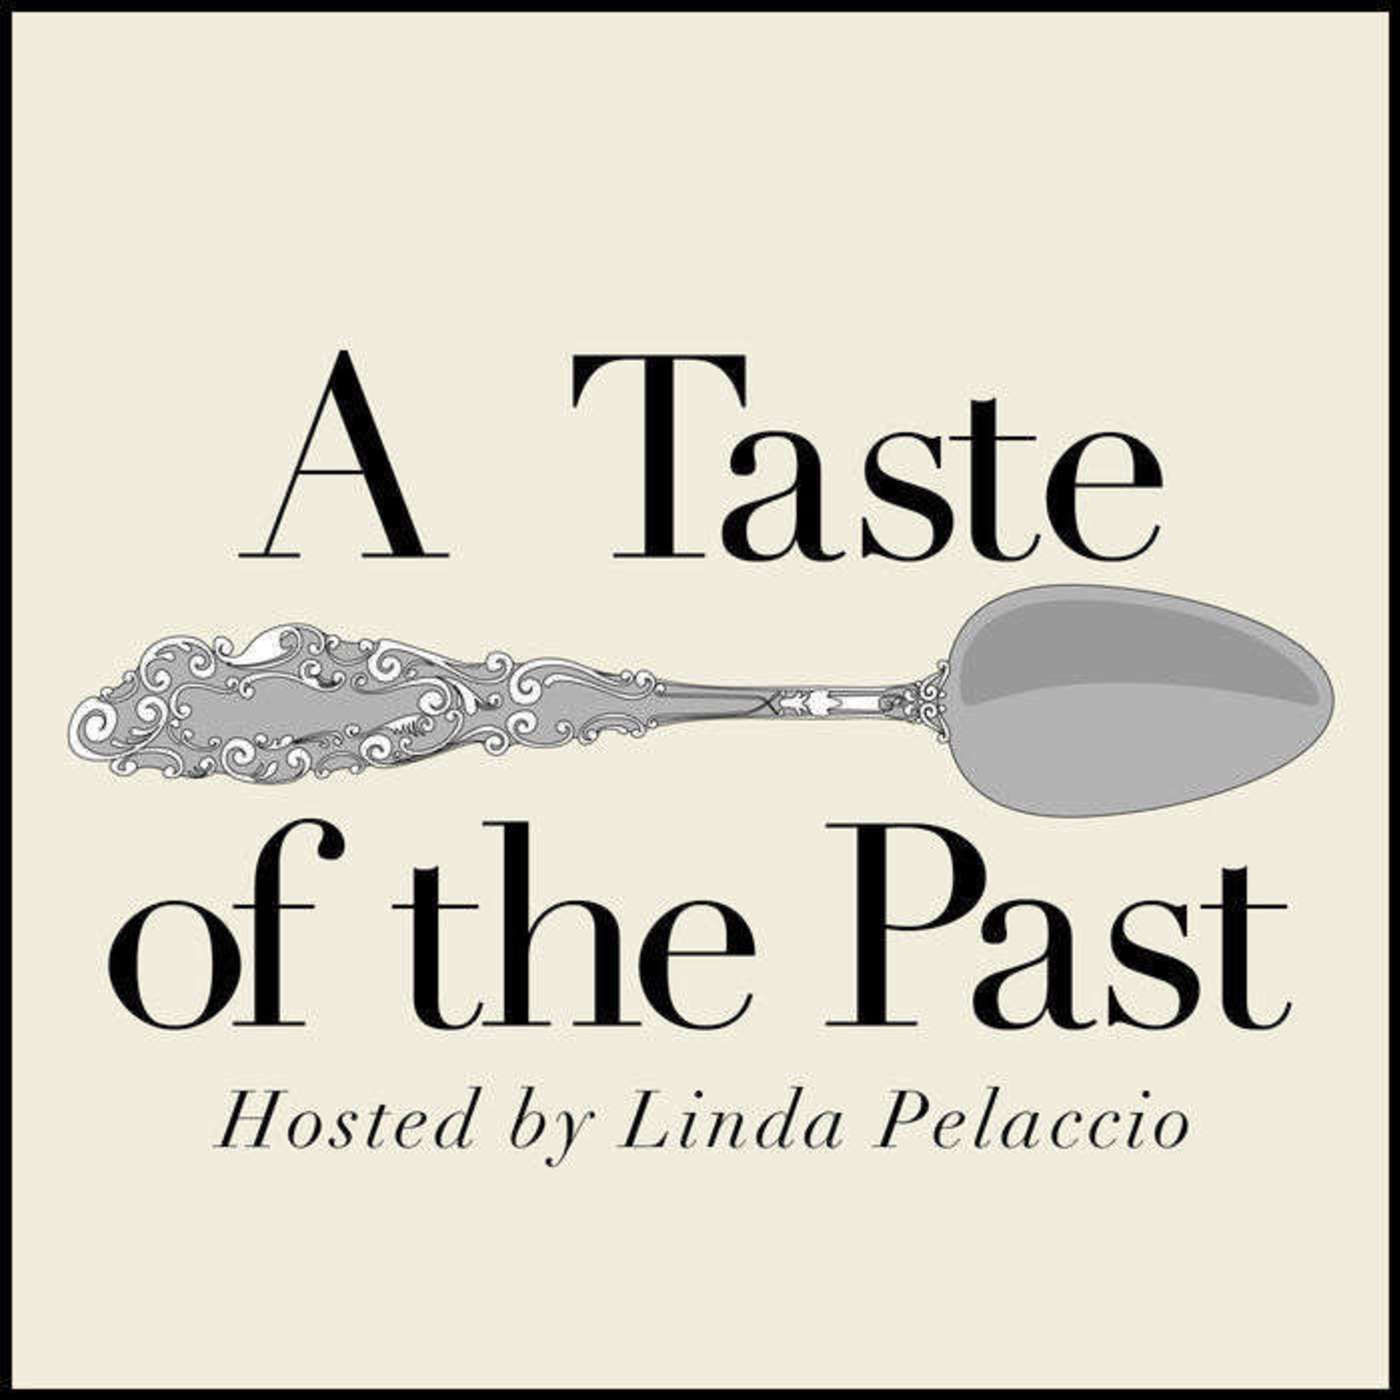 Episode 100: Preserving the Past